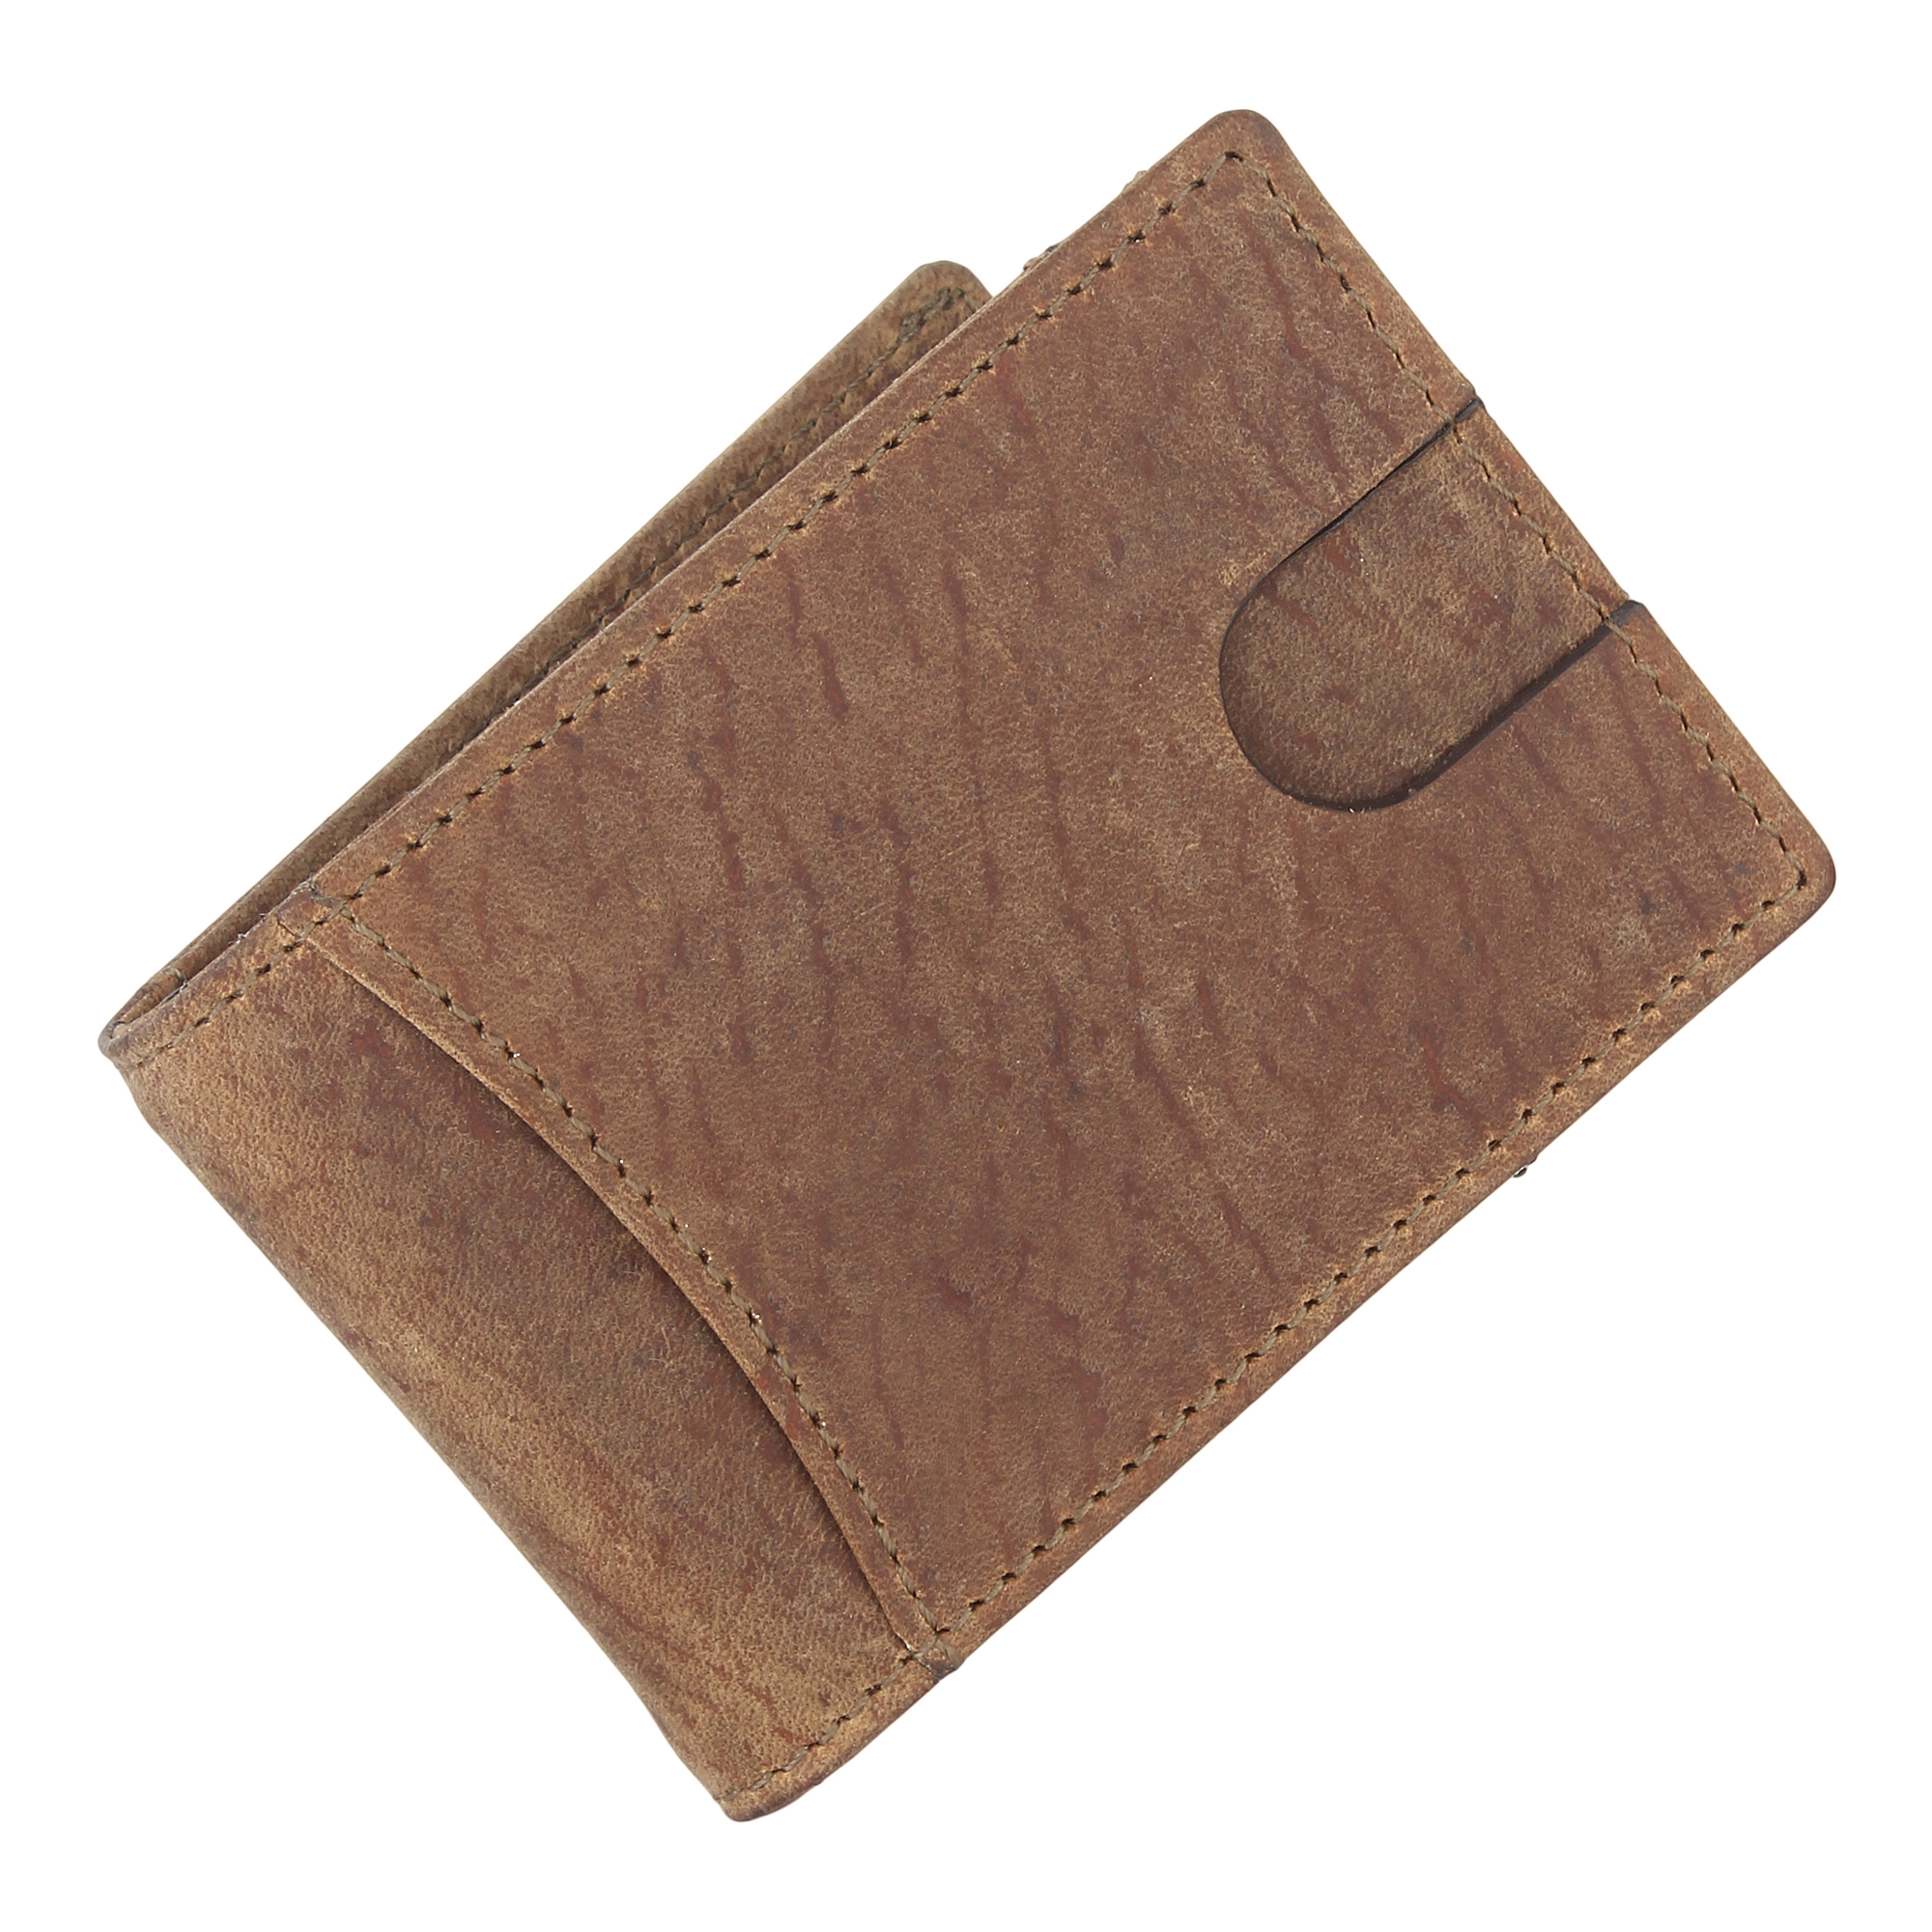 Leather Card Holder Wallet Manufacturers In Dubai, Card Holder Wallet Suppliers In Dubai, Card Holder Wallet Wholesalers In Dubai, Card Holder Wallet Traders In Dubai